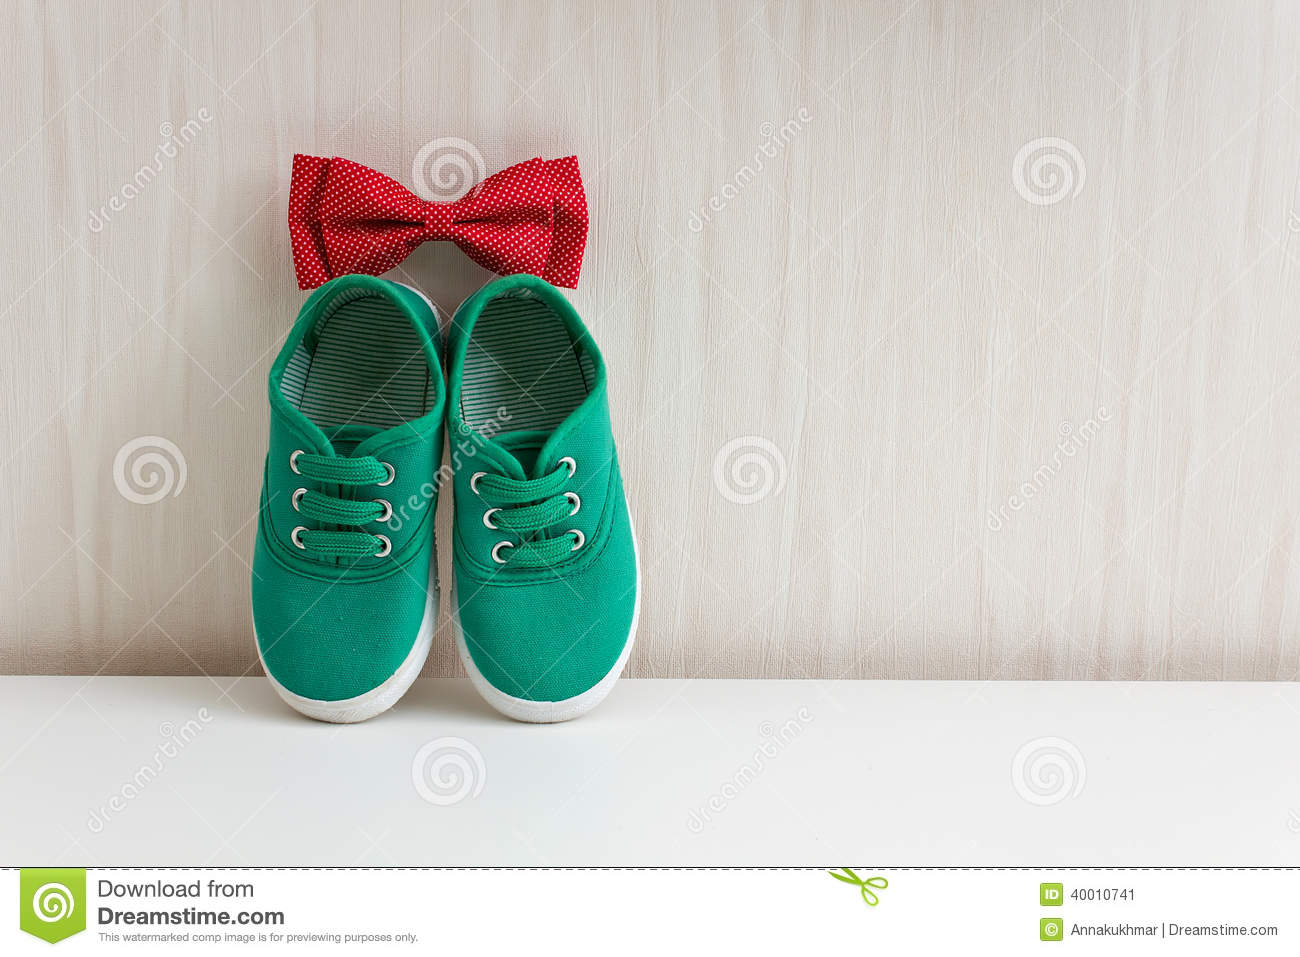 Bow tie and green shoes on background wall with wallpaper